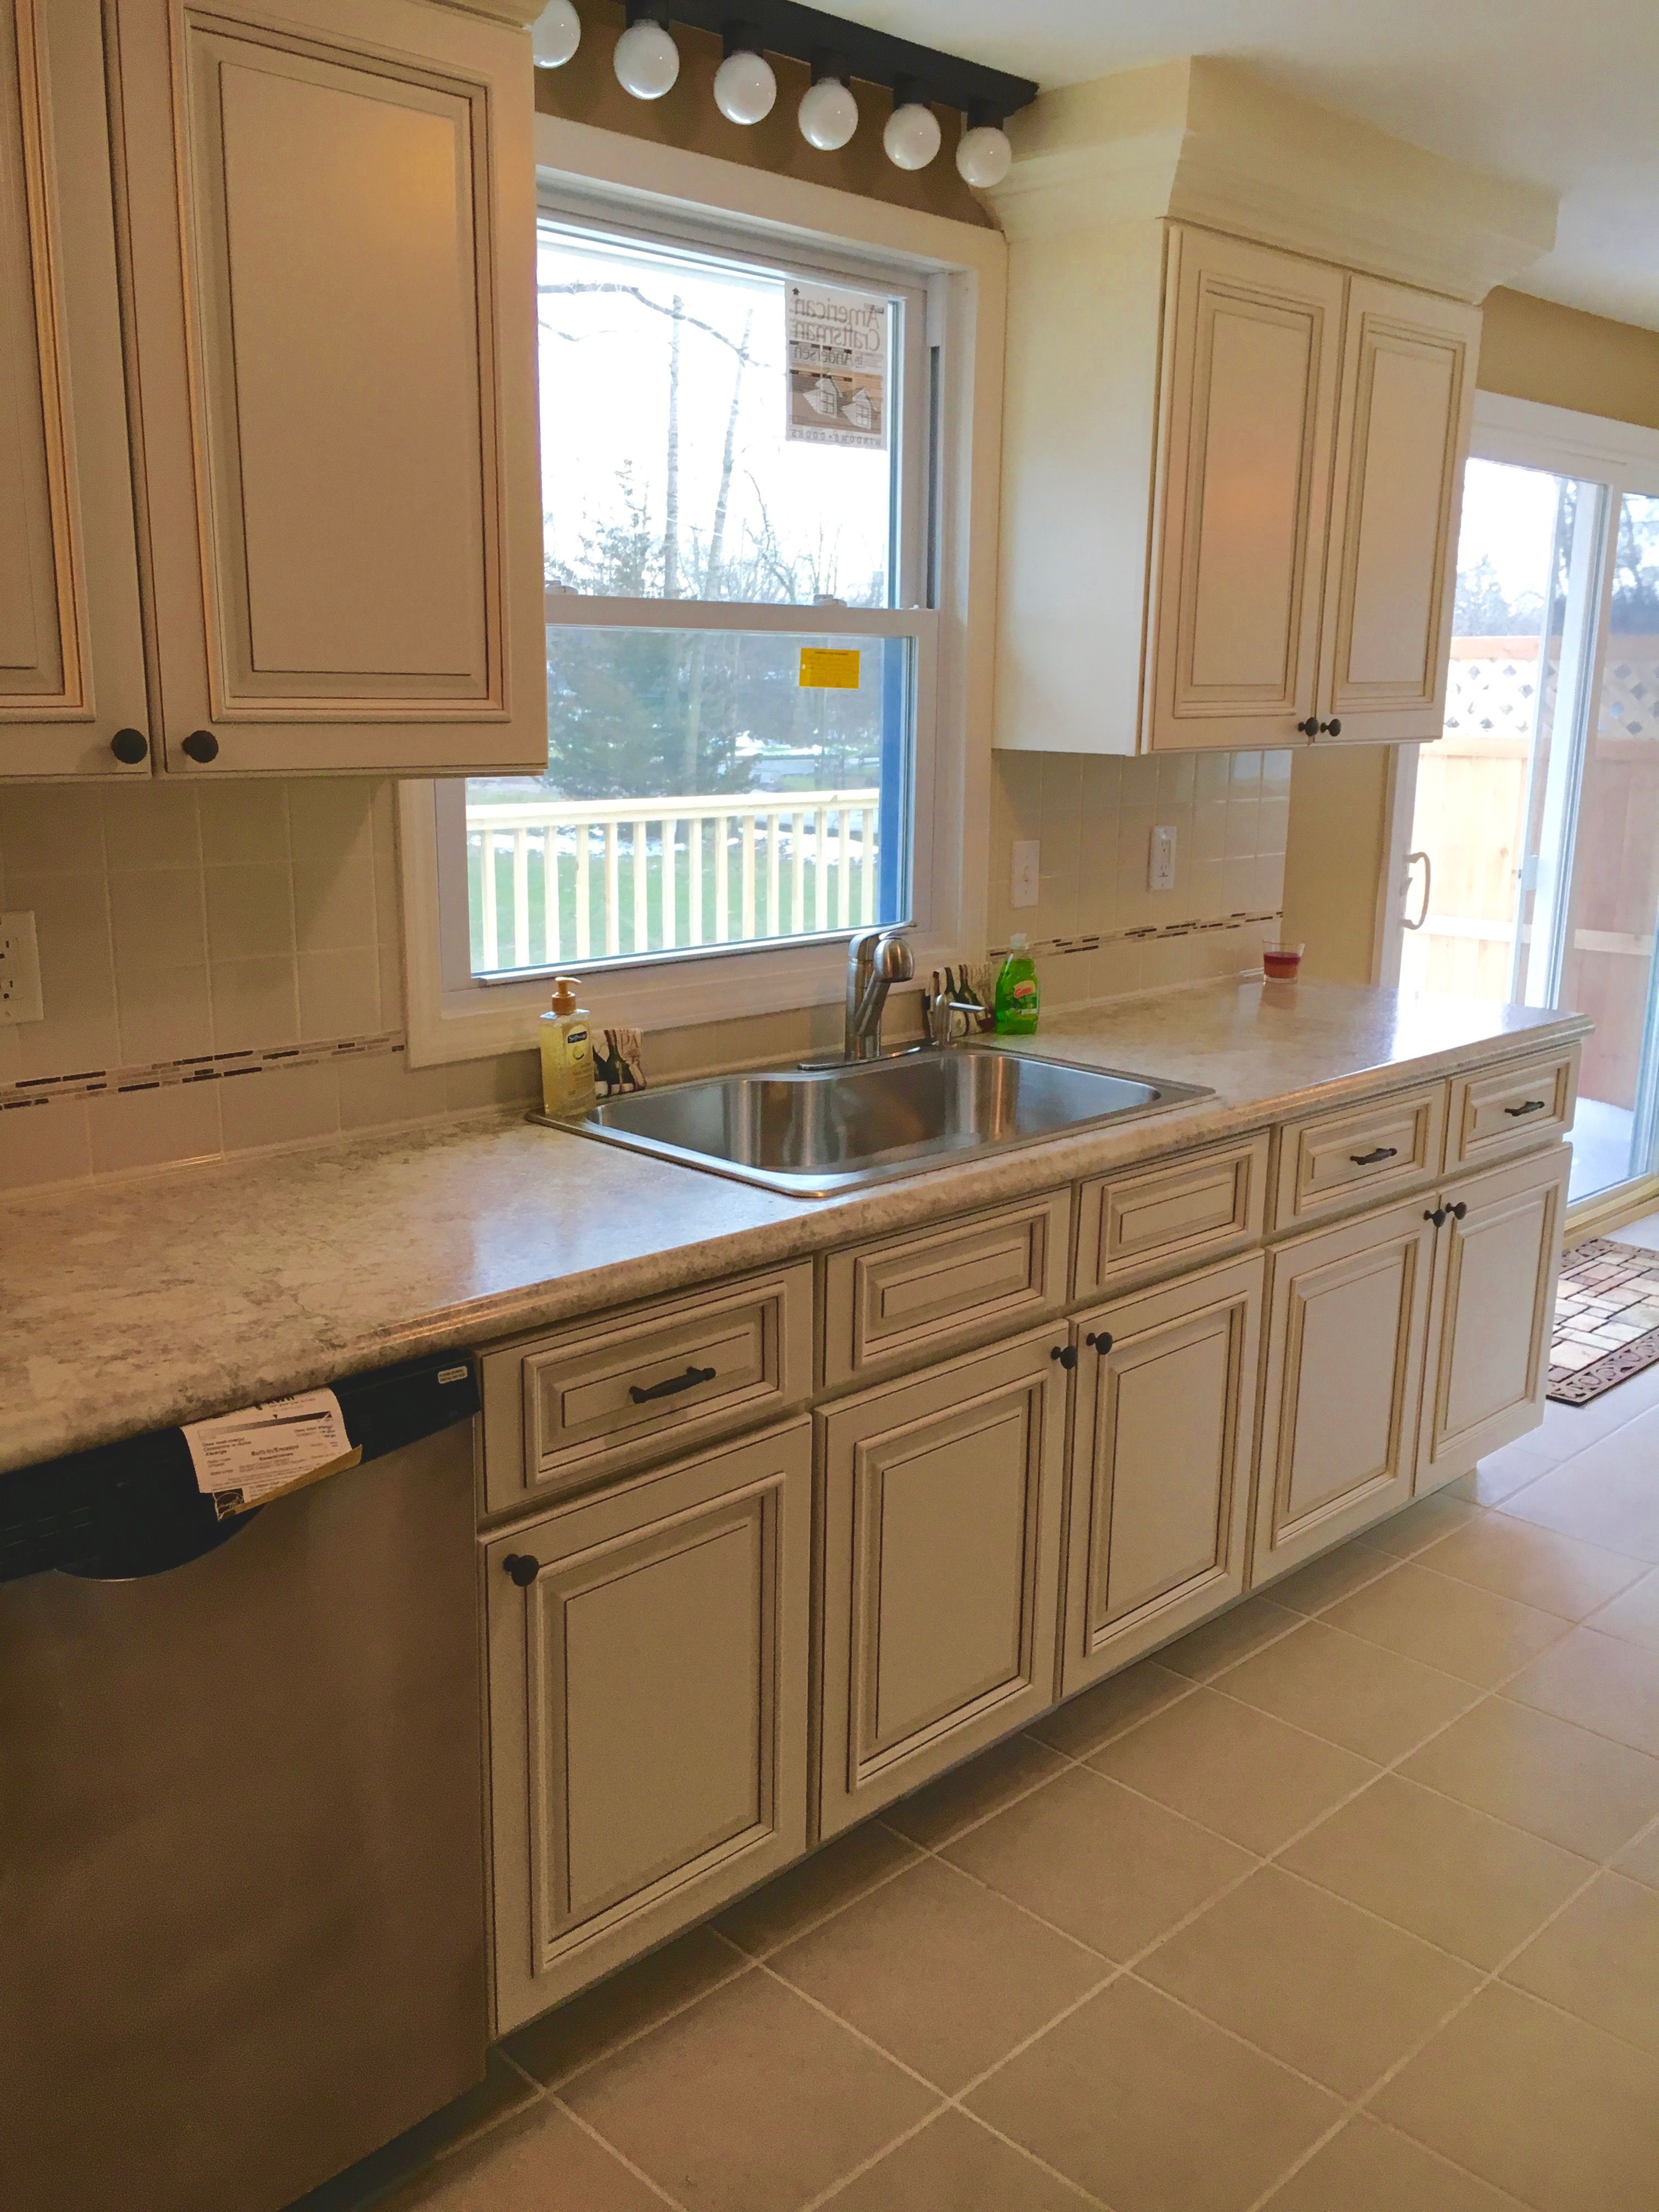 Kitchen Island Clearance Sale Custom Cabinets Bought On Clearance Created An Elegant Look For An